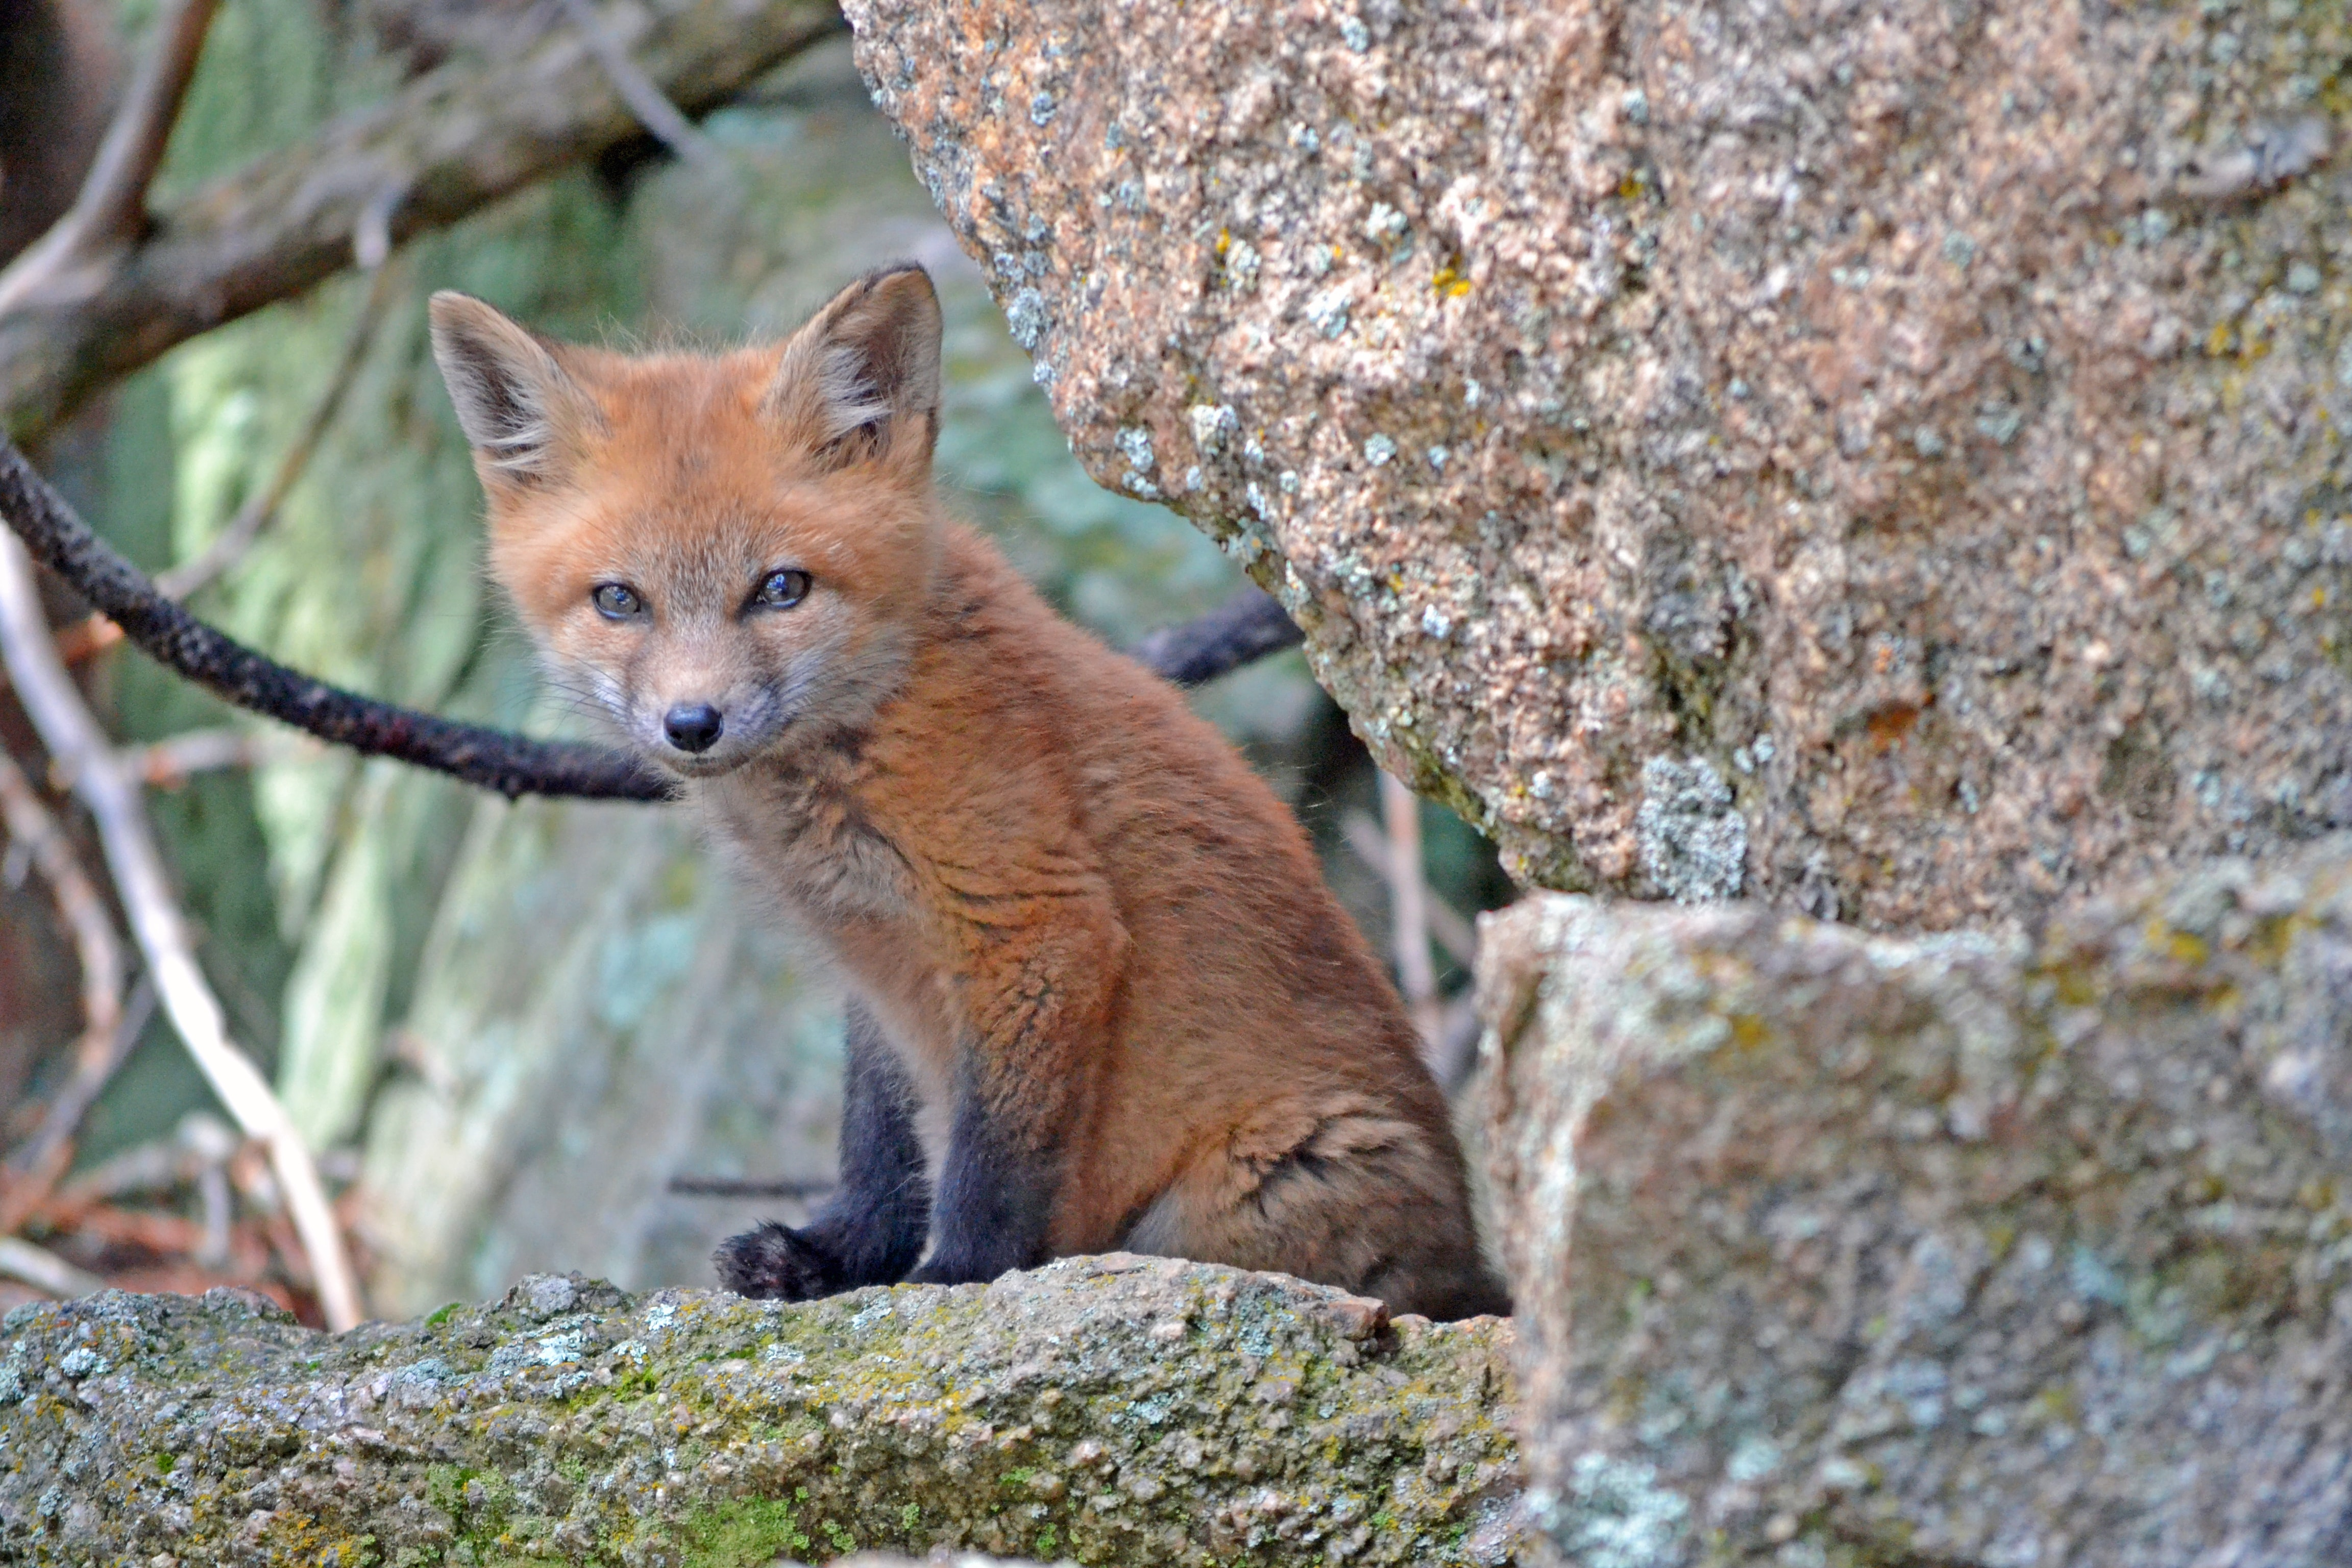 Baby fox beside a tangle of vines and branches and mossy rocks